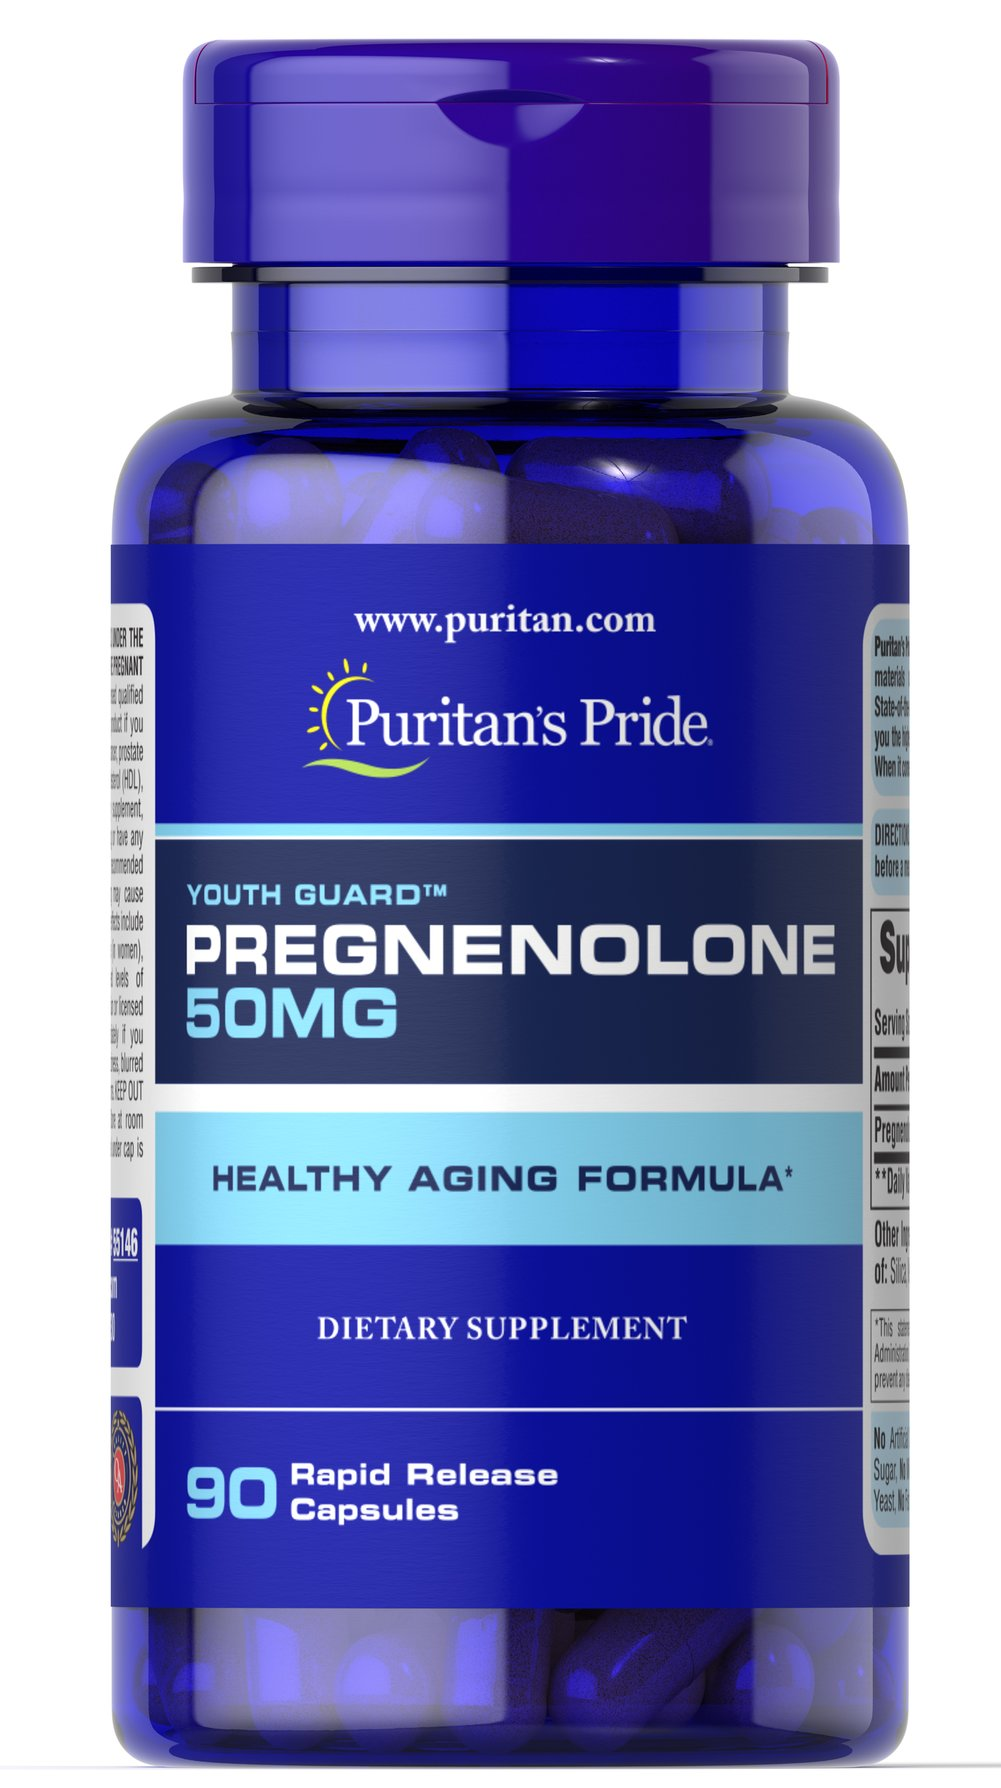 Pregnenolone 50 mg <p>Pregnenolone is a substance our bodies produce in the adrenal glands and liver . Since Pregnenolone levels can decline with age, just one serving a day of Puritan's Pride Pregnenolone can contribute to your healthy aging regimen.**</p> 90 Capsules 50 mg $16.49